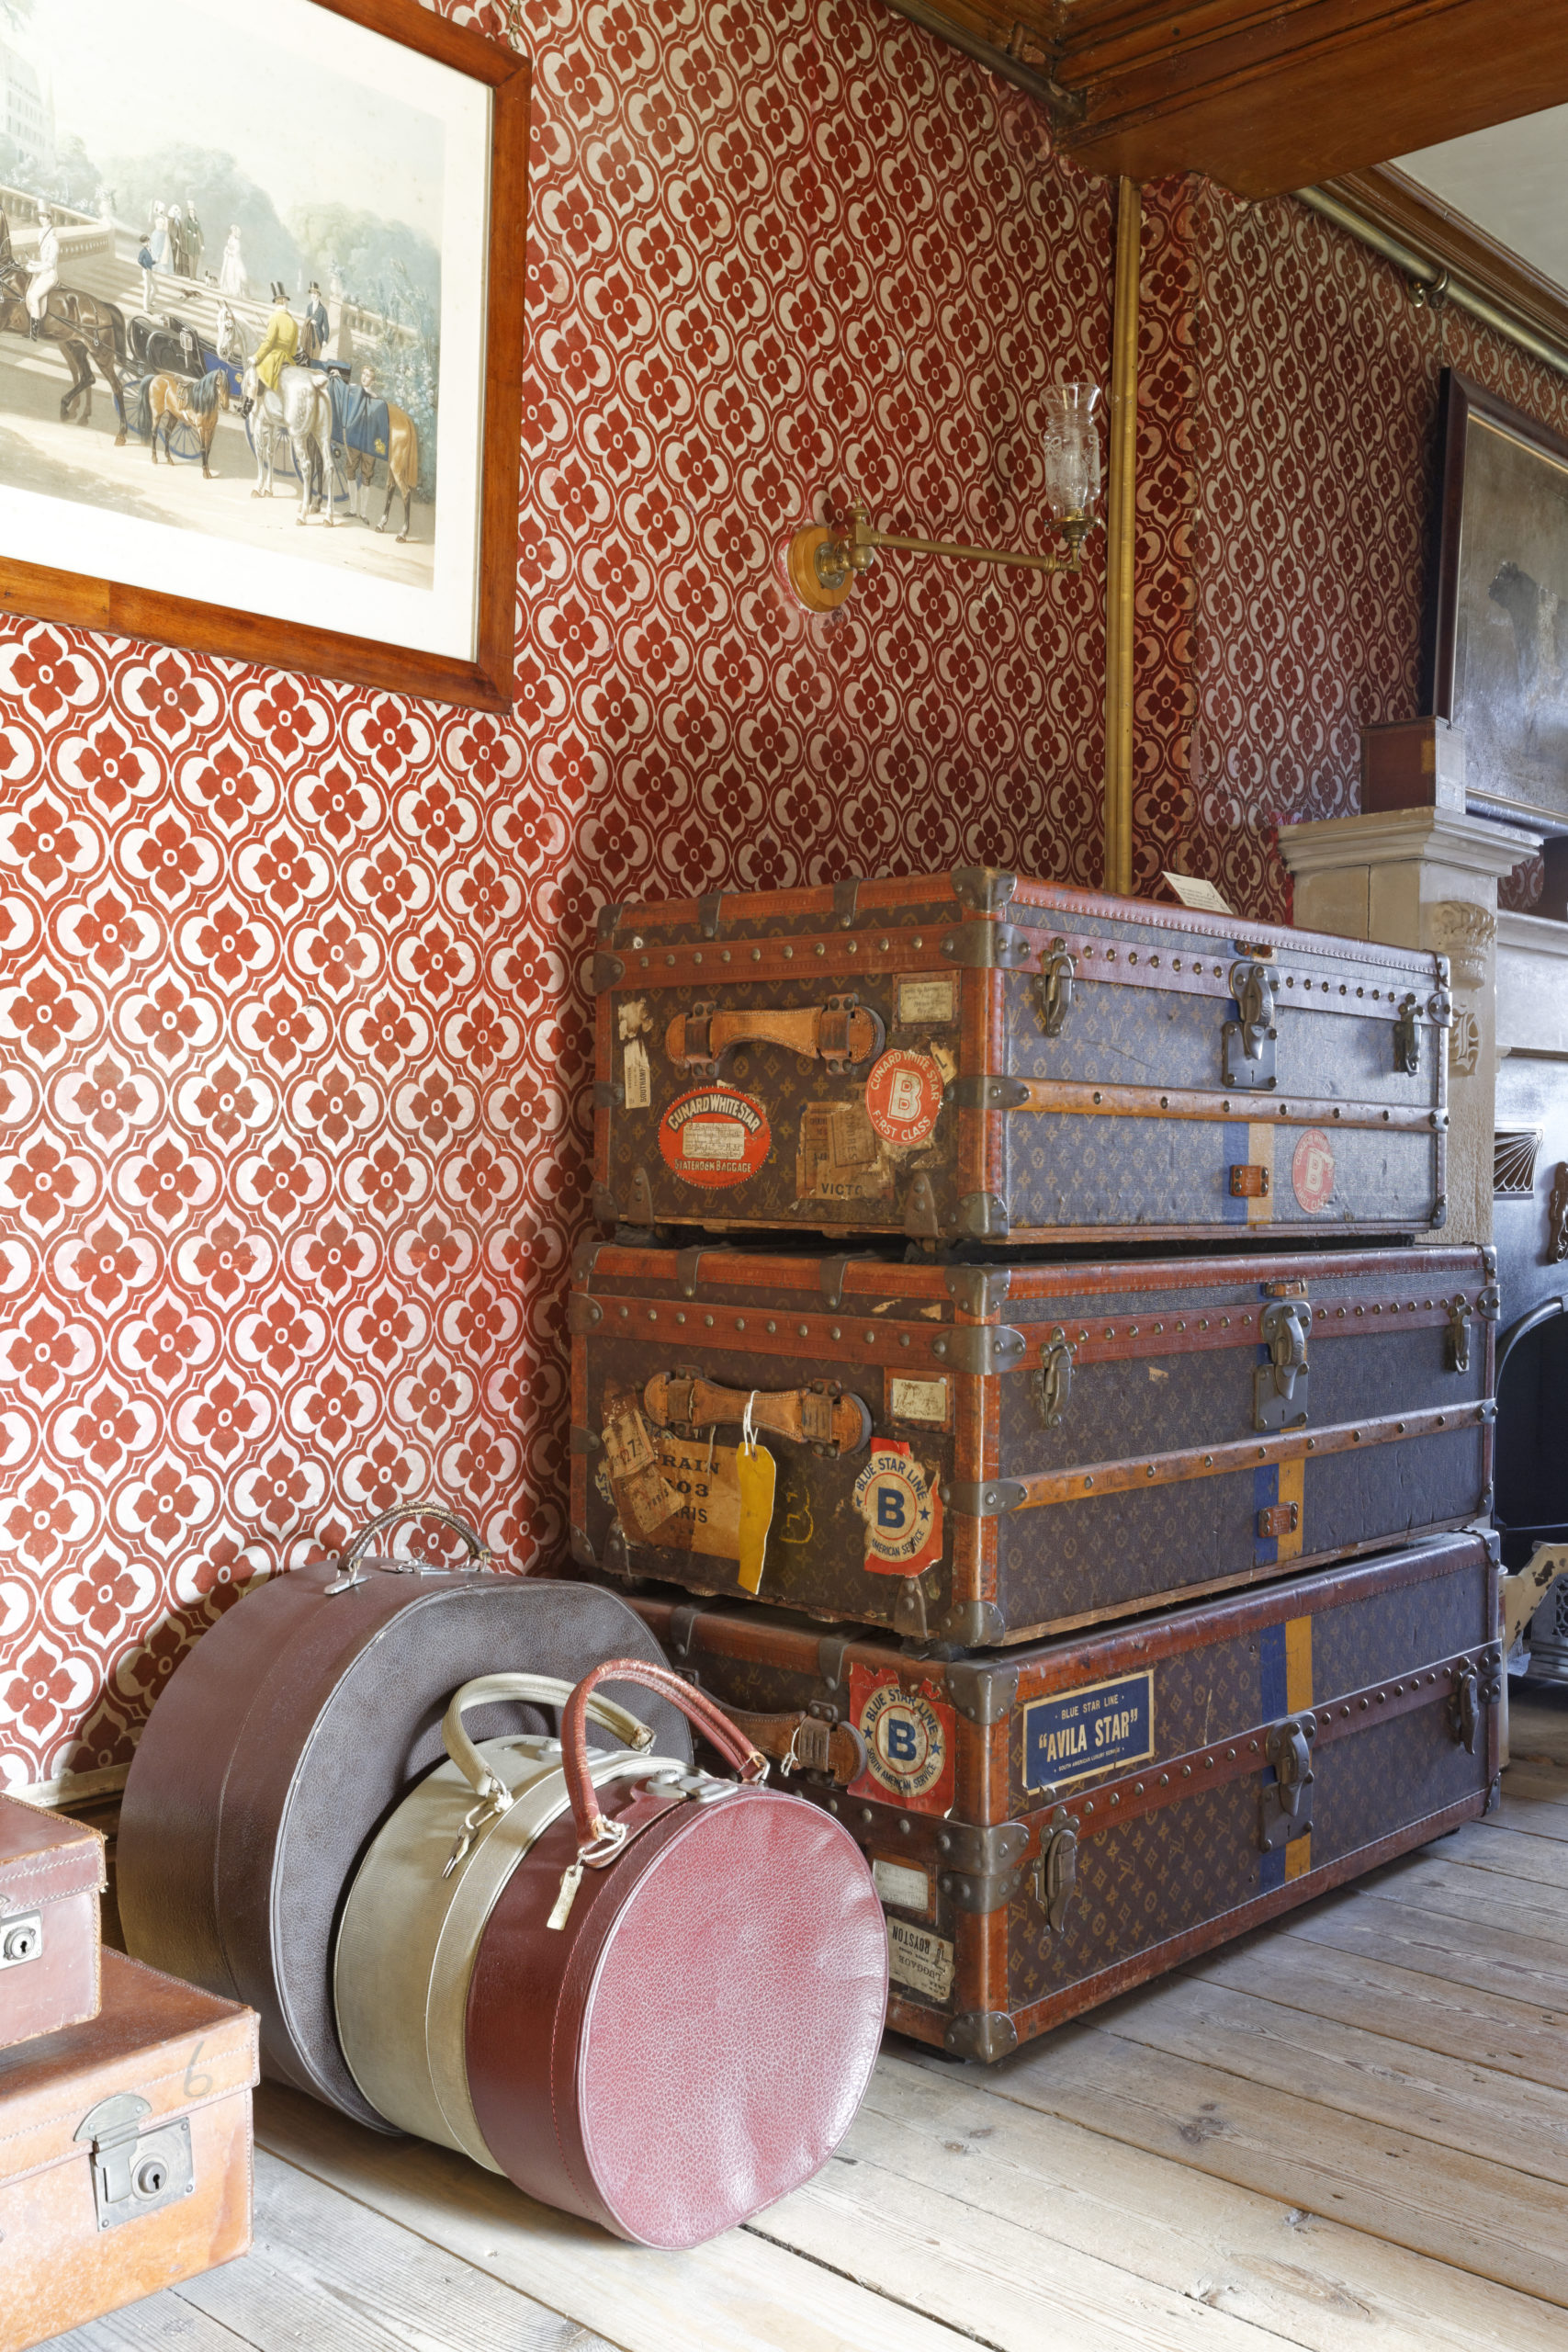 A stack of suitcases at Wimpole Hall, Cambridgeshire. ©National Trust Images Chris Lacey